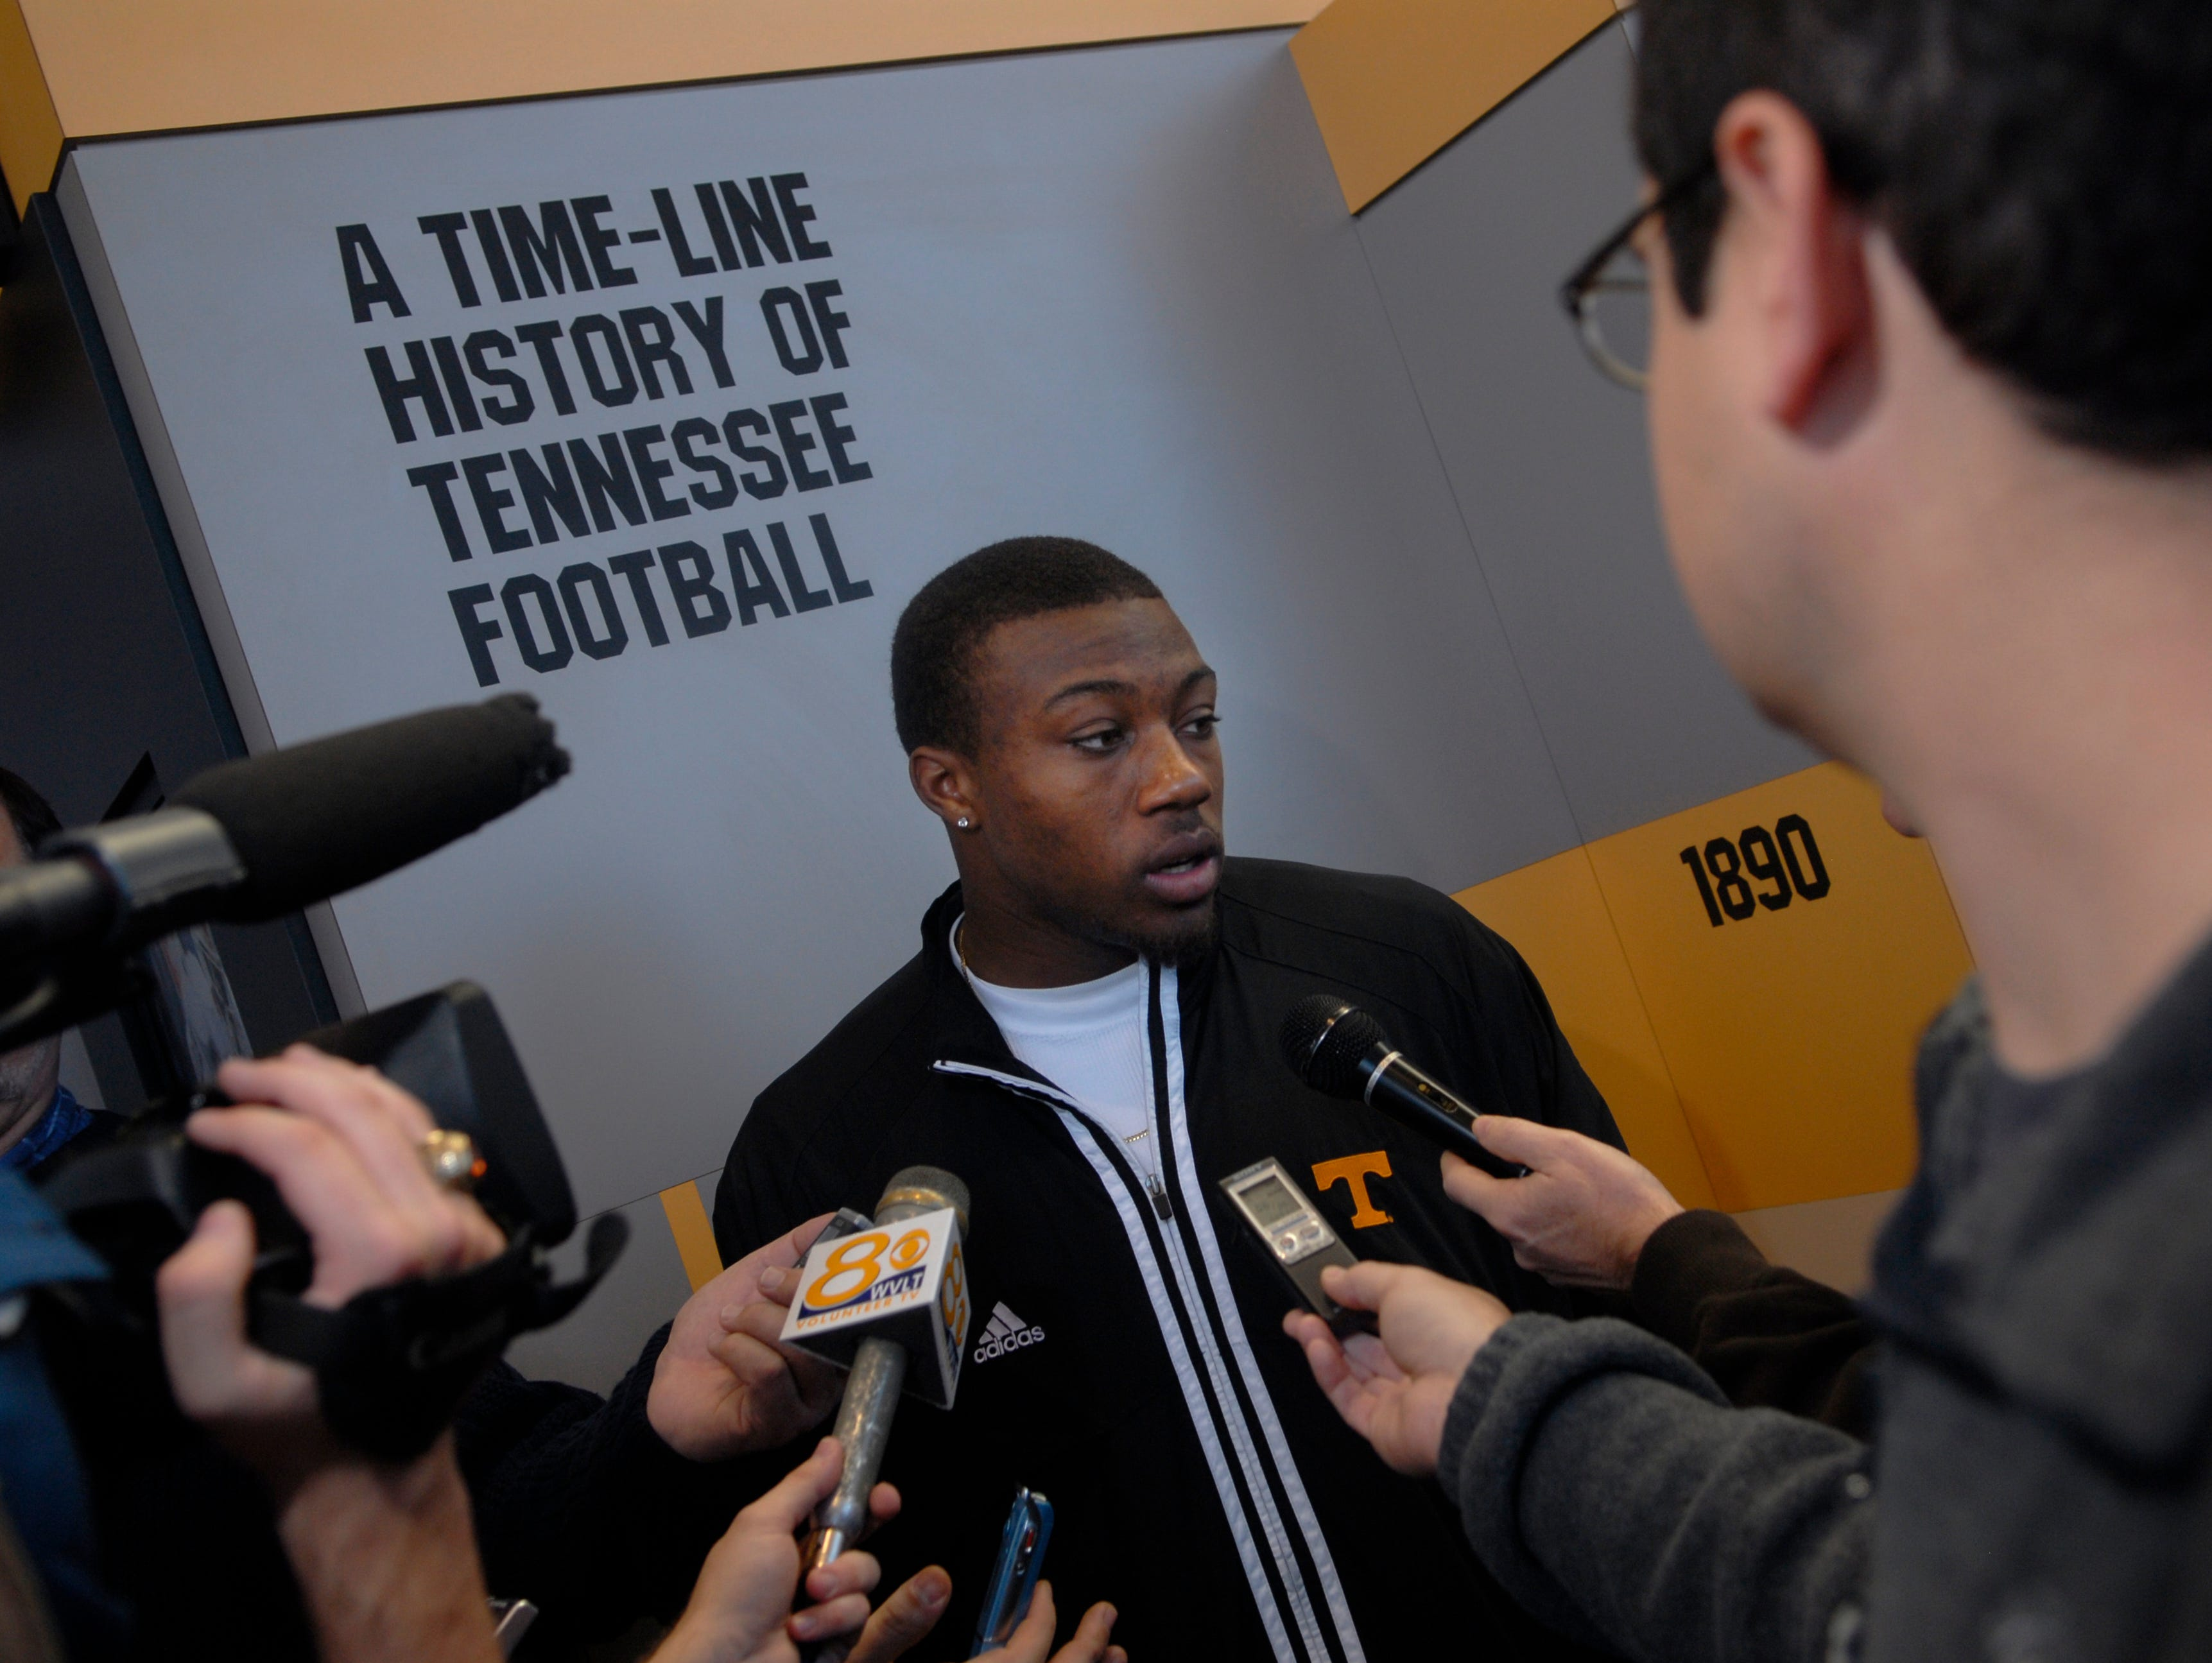 Friday, January 18, 2008  University of Tennessee football freshmen Eric Berry is surrounded by media Friday at the Neyland Thompson Sports Center.